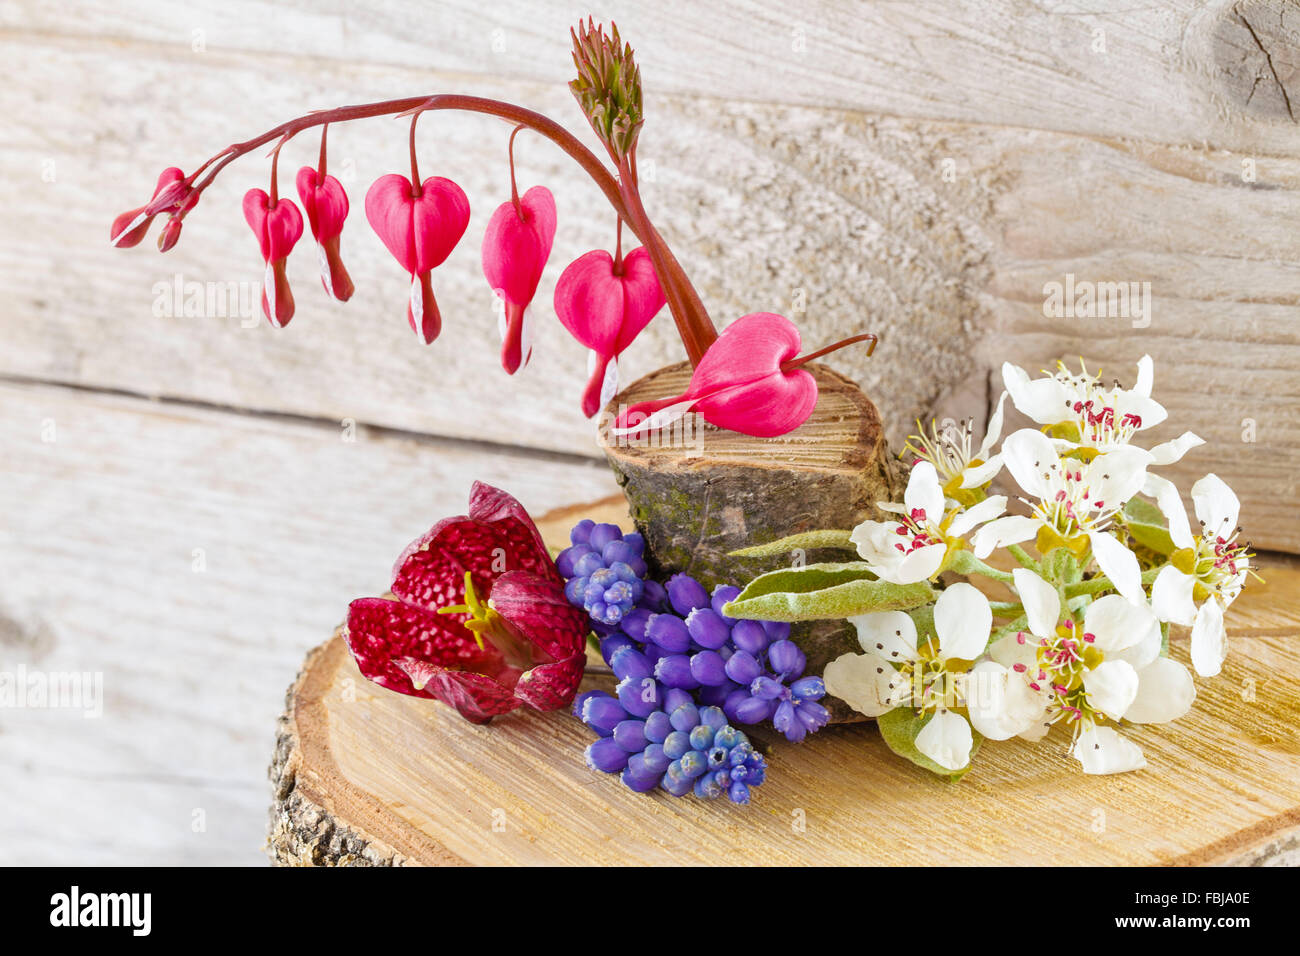 Still life with different fresh flowers bleeding heart chess stock still life with different fresh flowers bleeding heart chess flower pear blossoms grape hyacinths izmirmasajfo